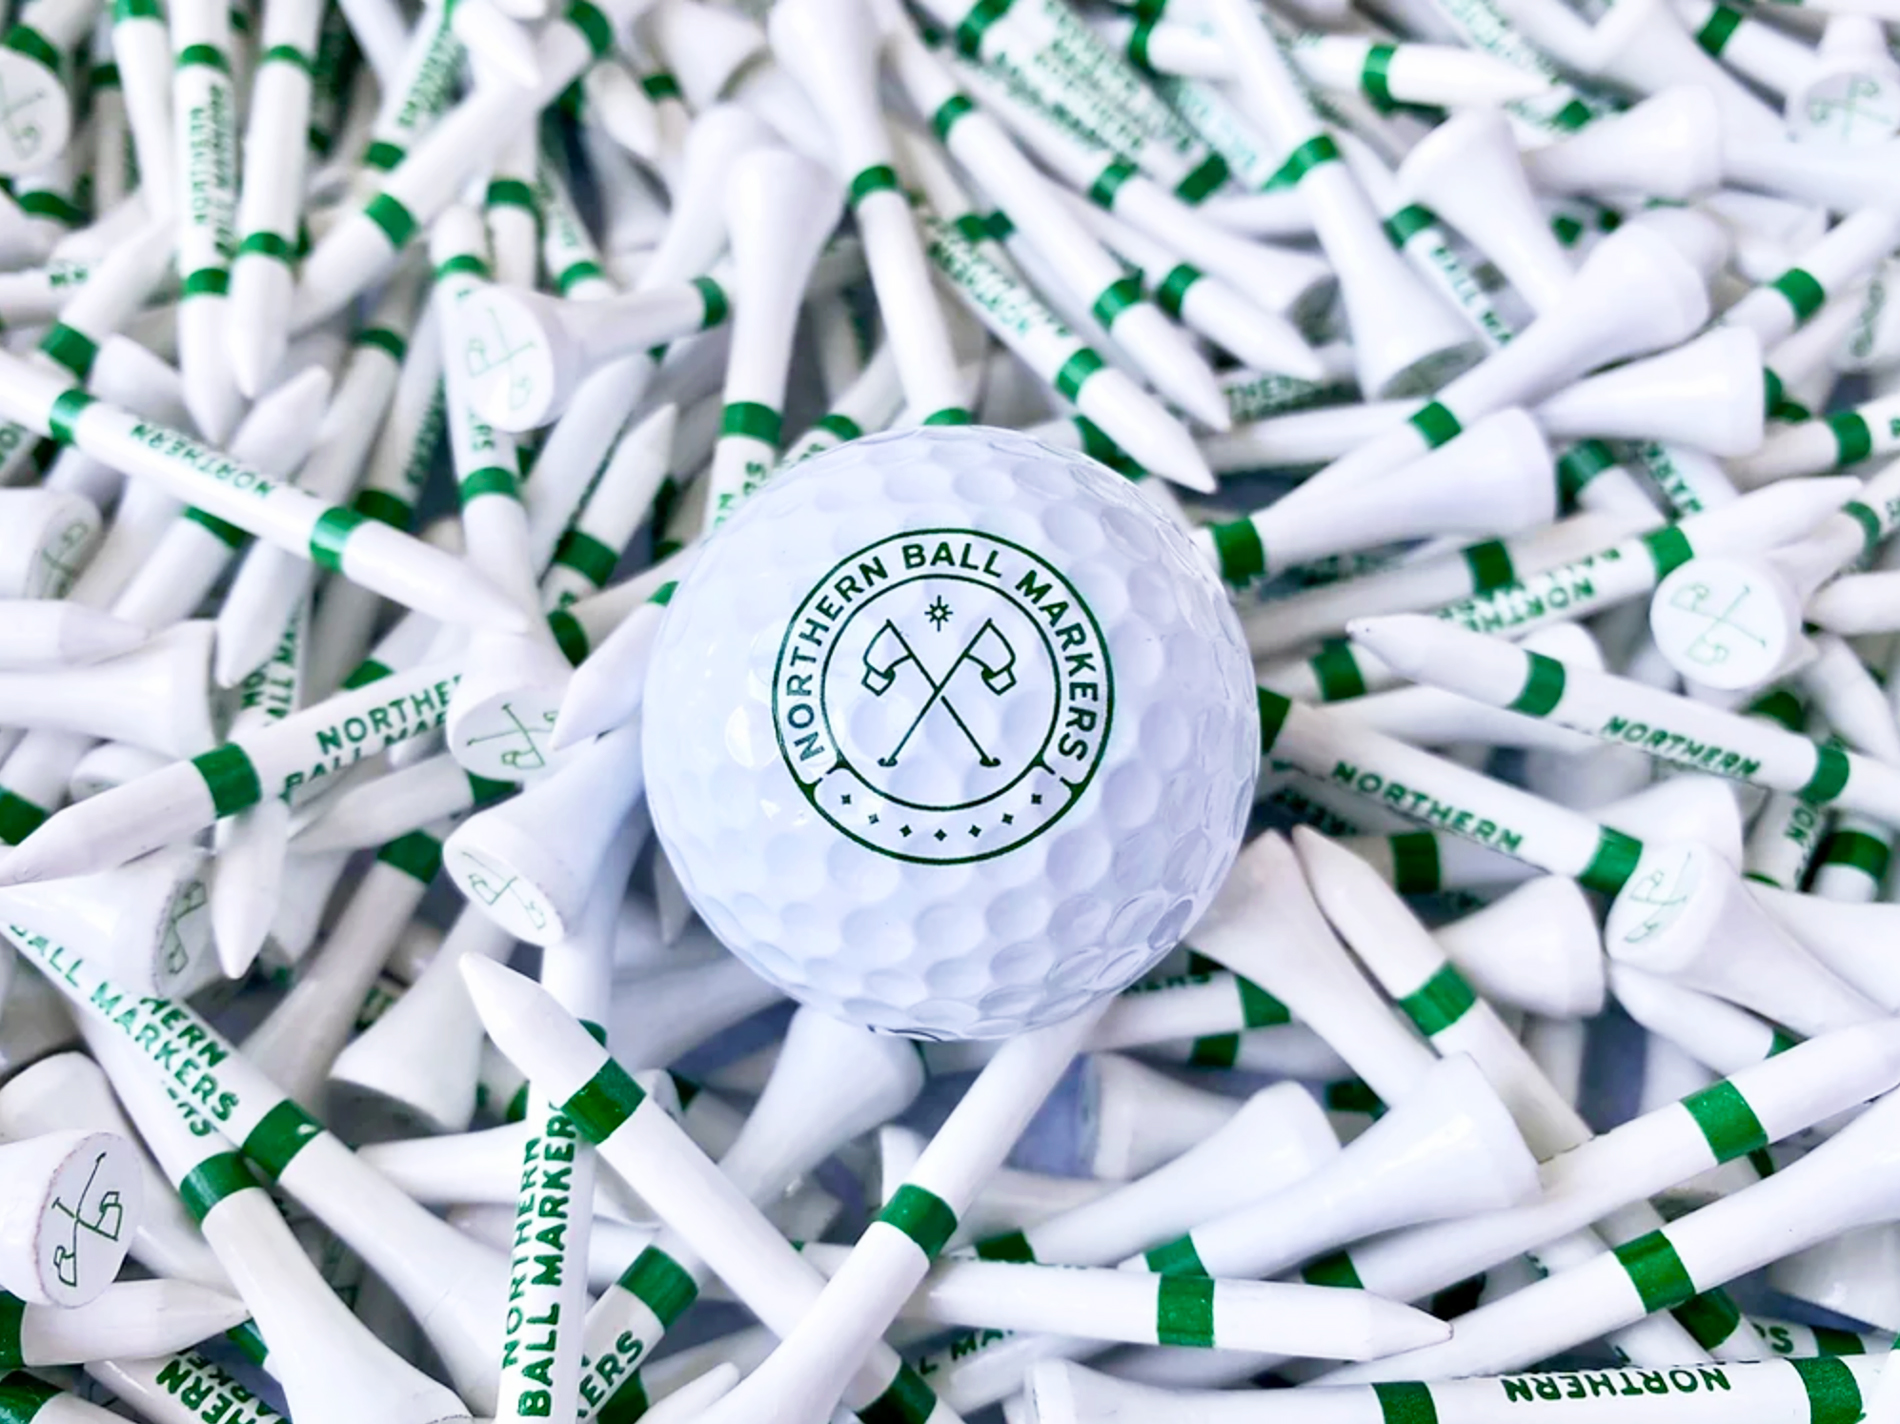 Northern Ball Markers branded golf ball design on top of golf tees